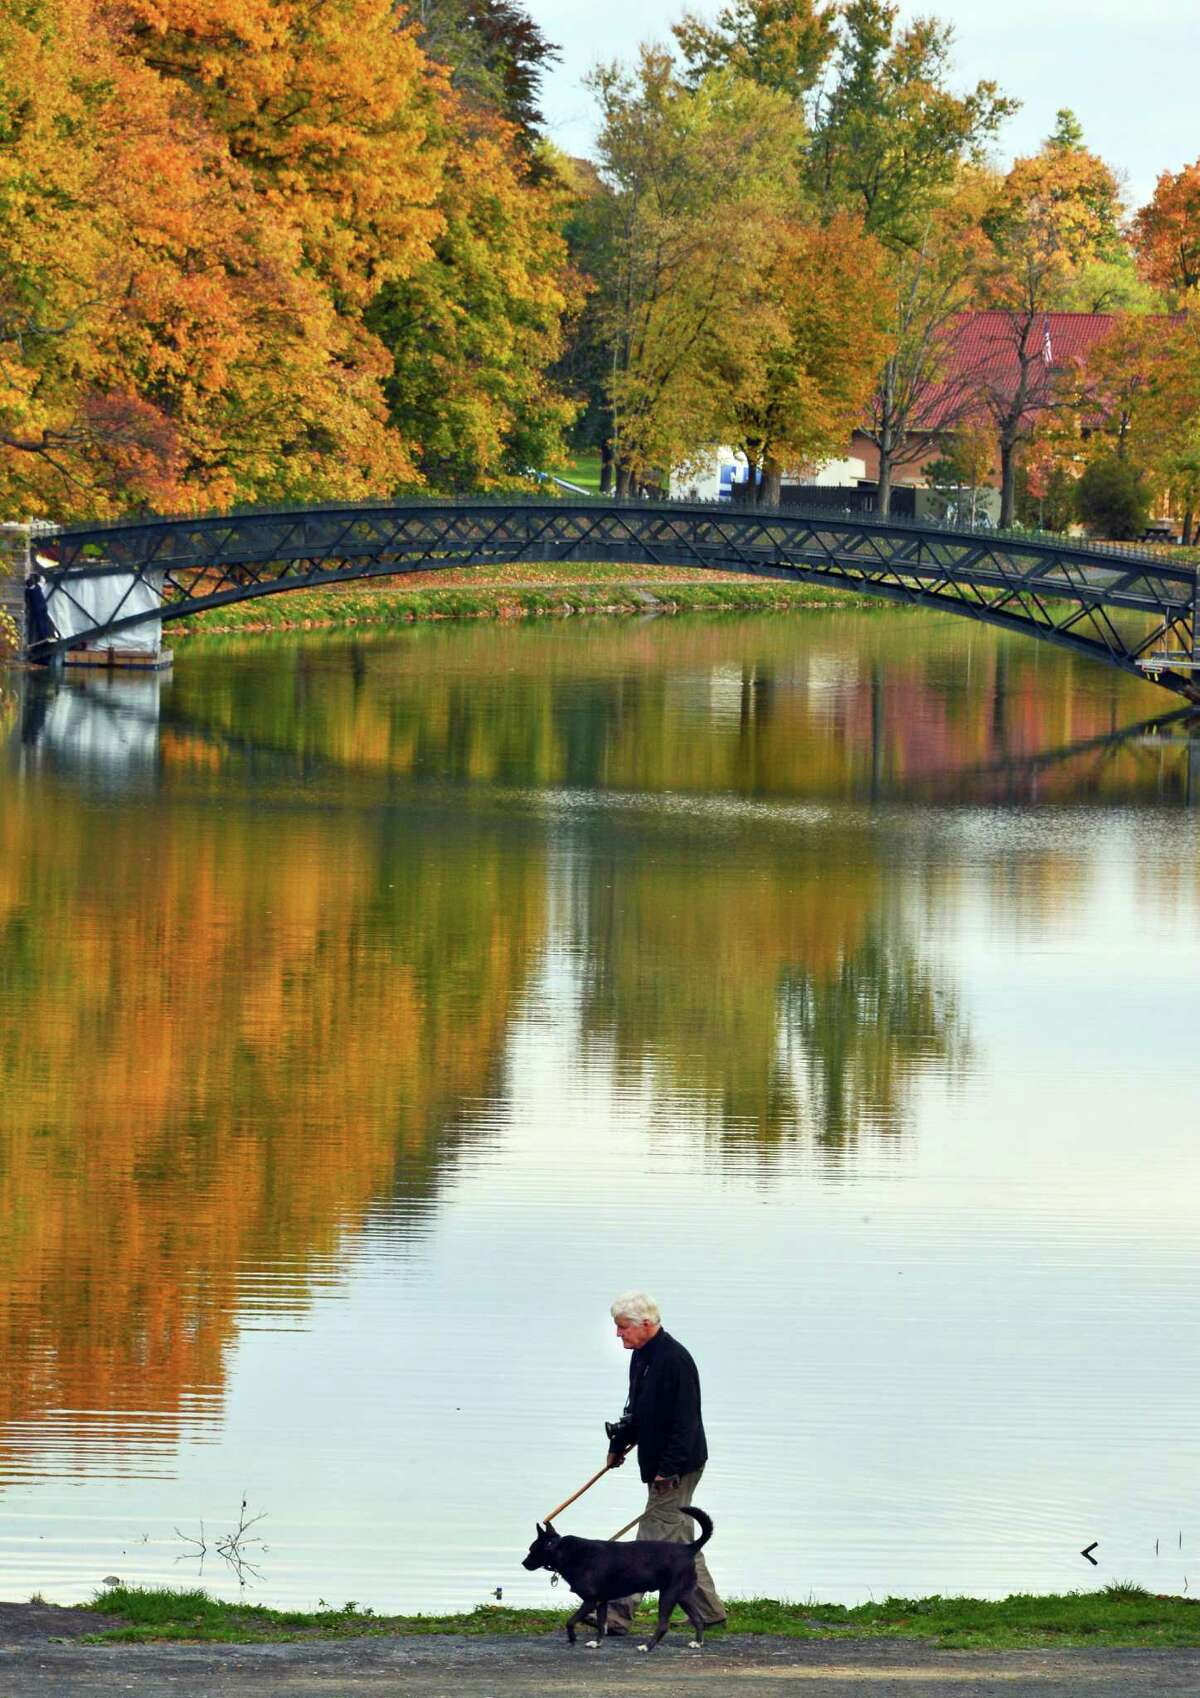 Willard Bridgham walks his dog Booker T around the lake in Washington Park Tuesday Oct. 22, 2013, in Albany, NY. (John Carl D'Annibale / Times Union)